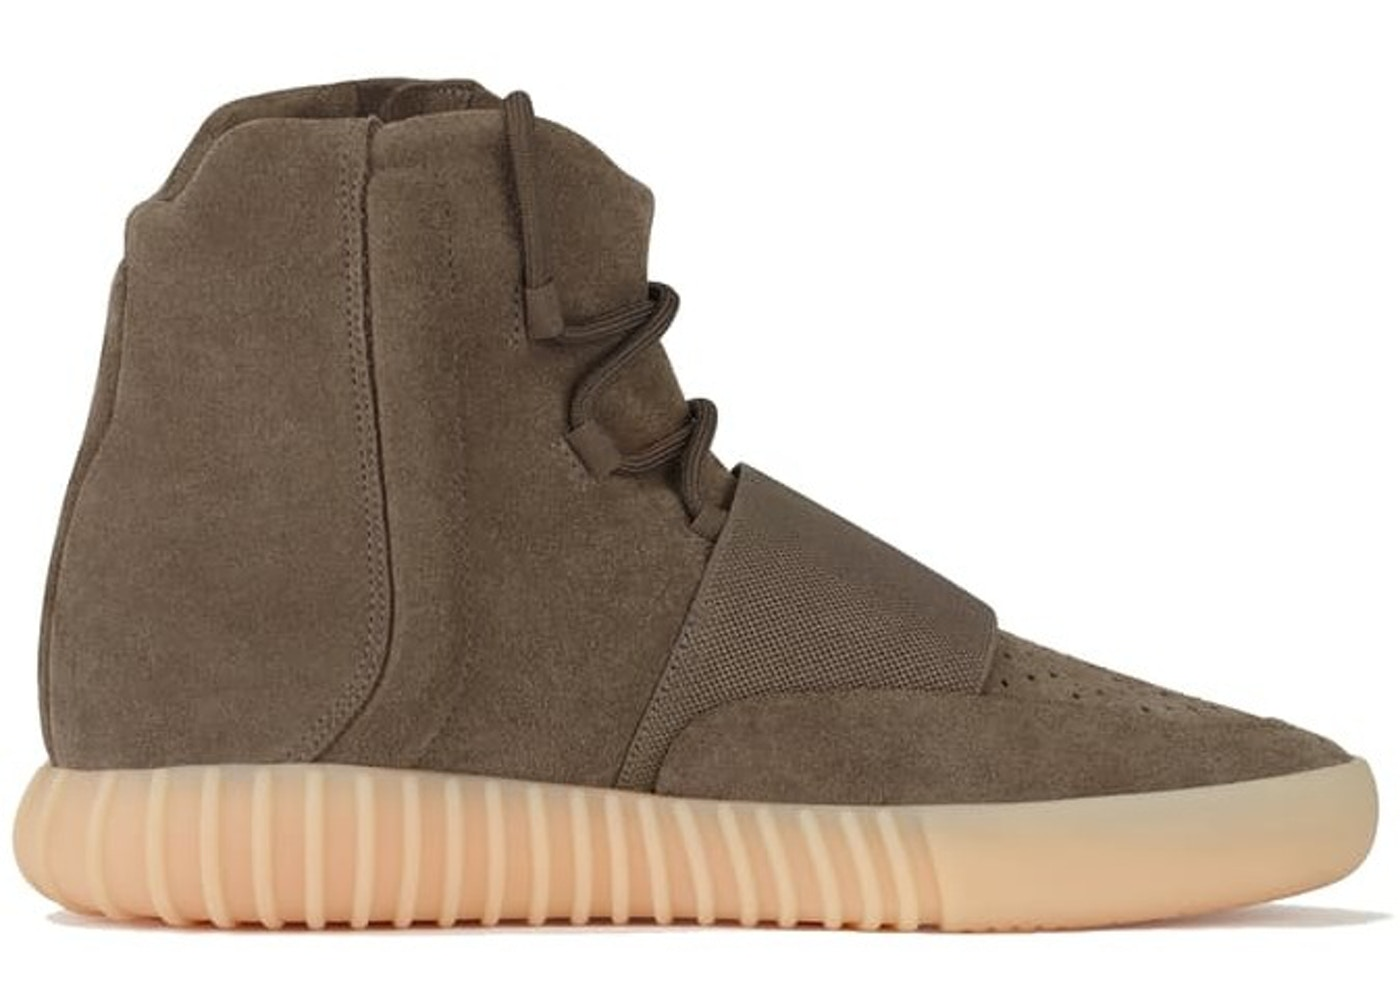 6d9acbcf7db8ed adidas Yeezy Boost 750 Light Brown Gum (Chocolate) - BY2456